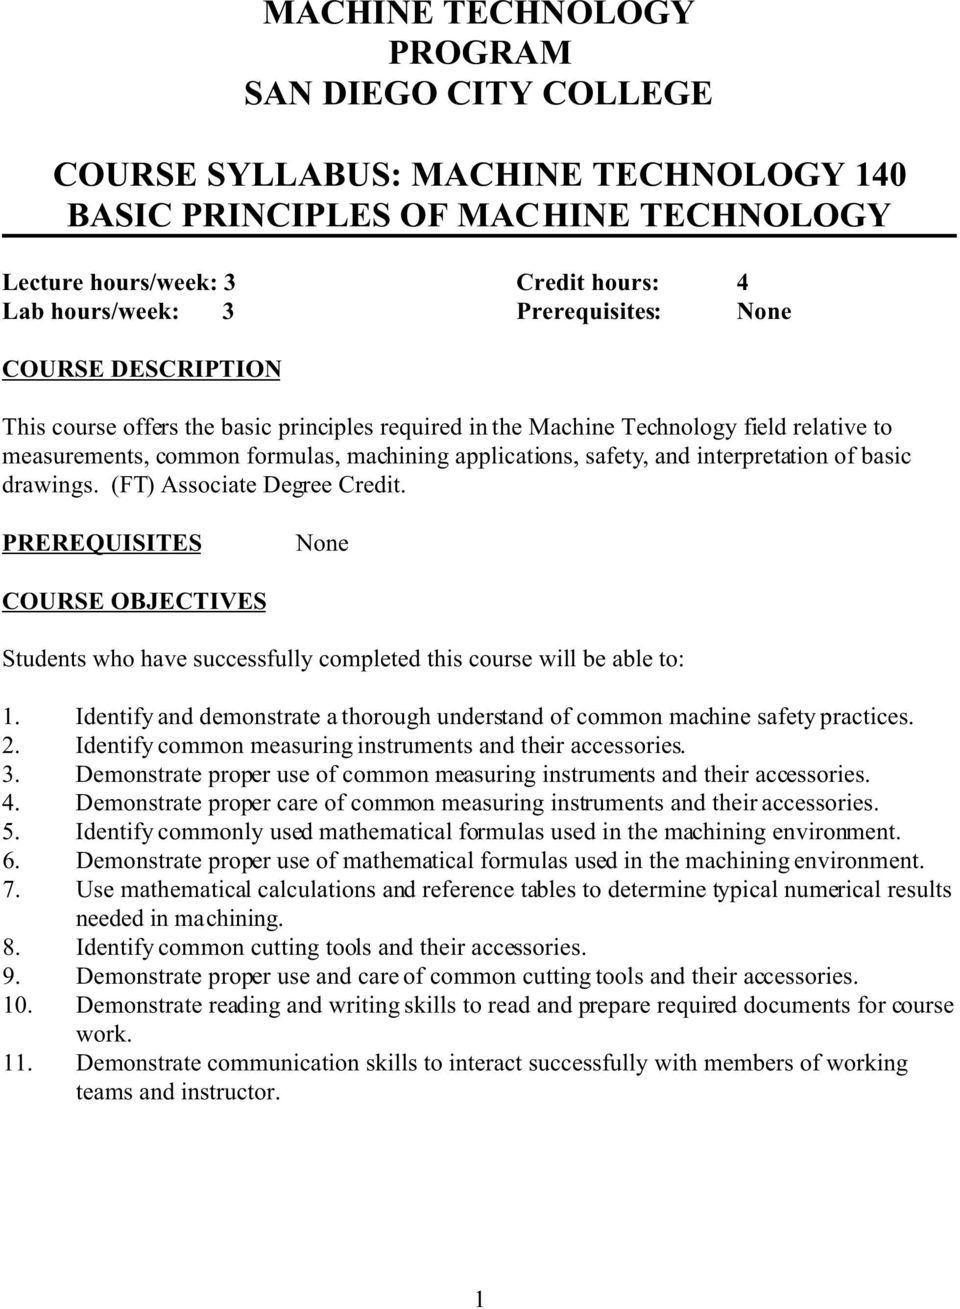 PREREQUISITES None COURSE OBJECTIVES Students who have successfully completed this course will be able to: 1. Identify and demonstrate a thorough understand of common machine safety practices. 2.